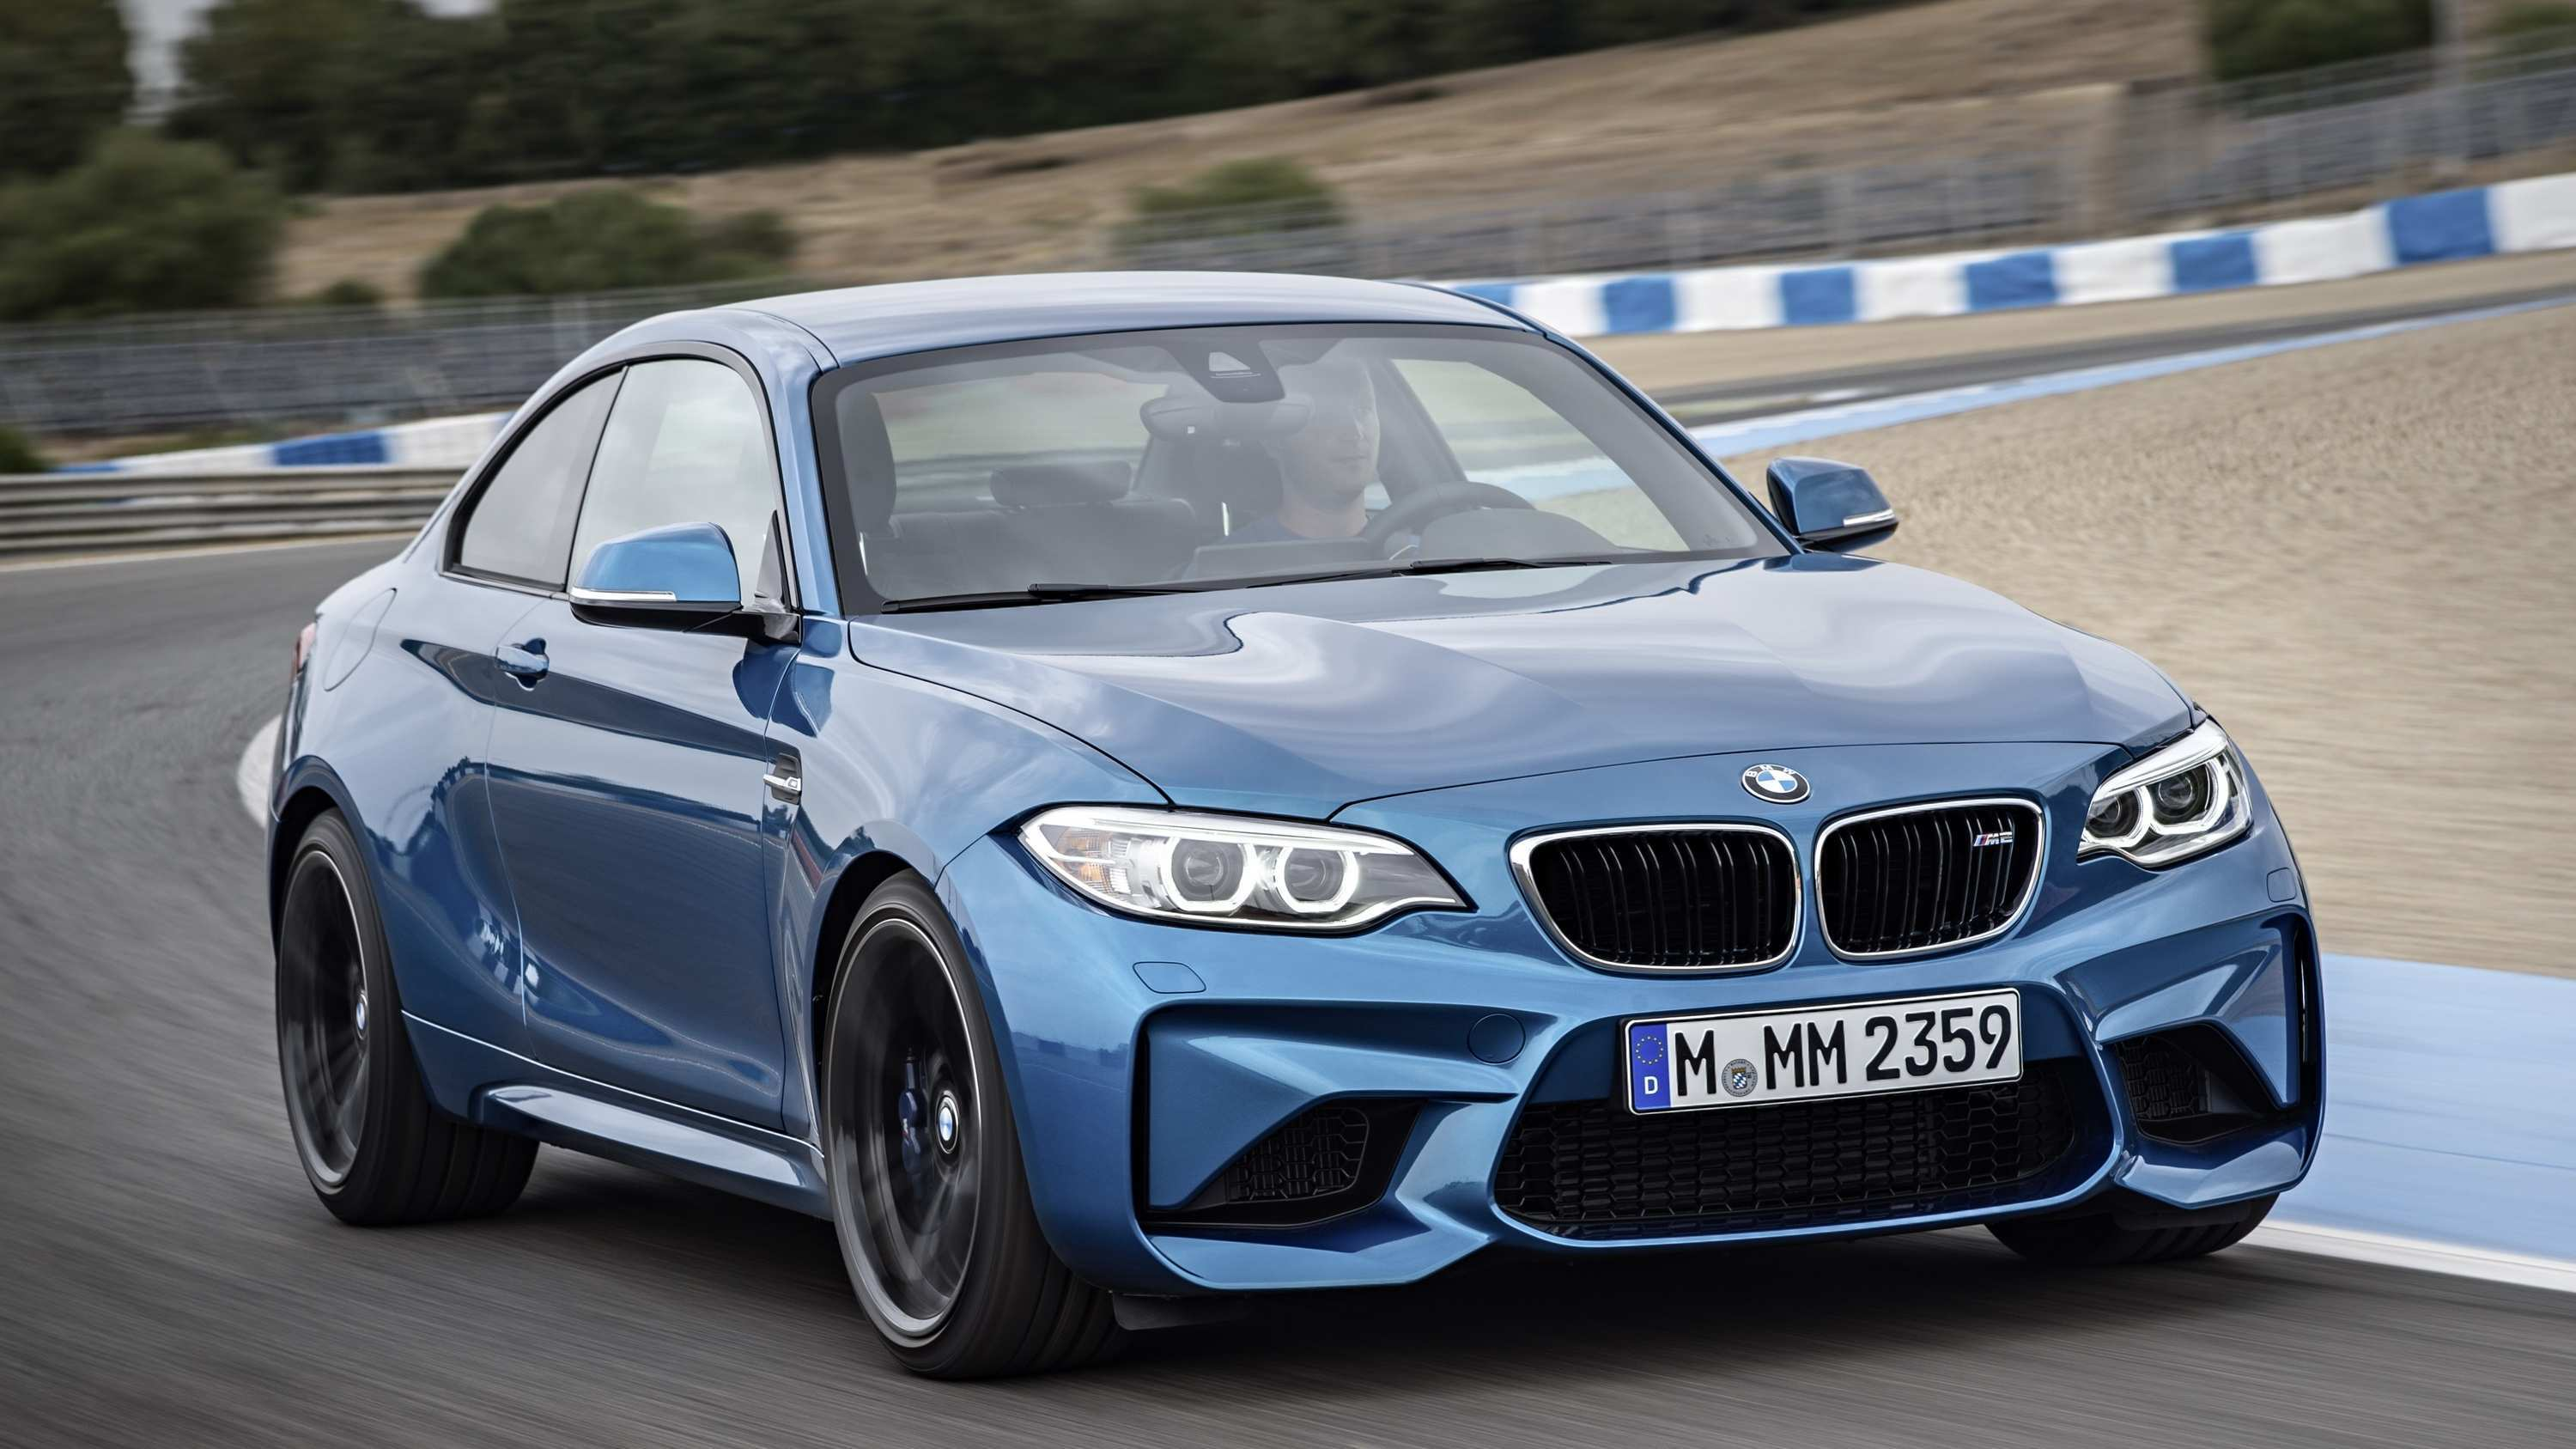 24 The Best 2020 BMW M2 Review And Release Date